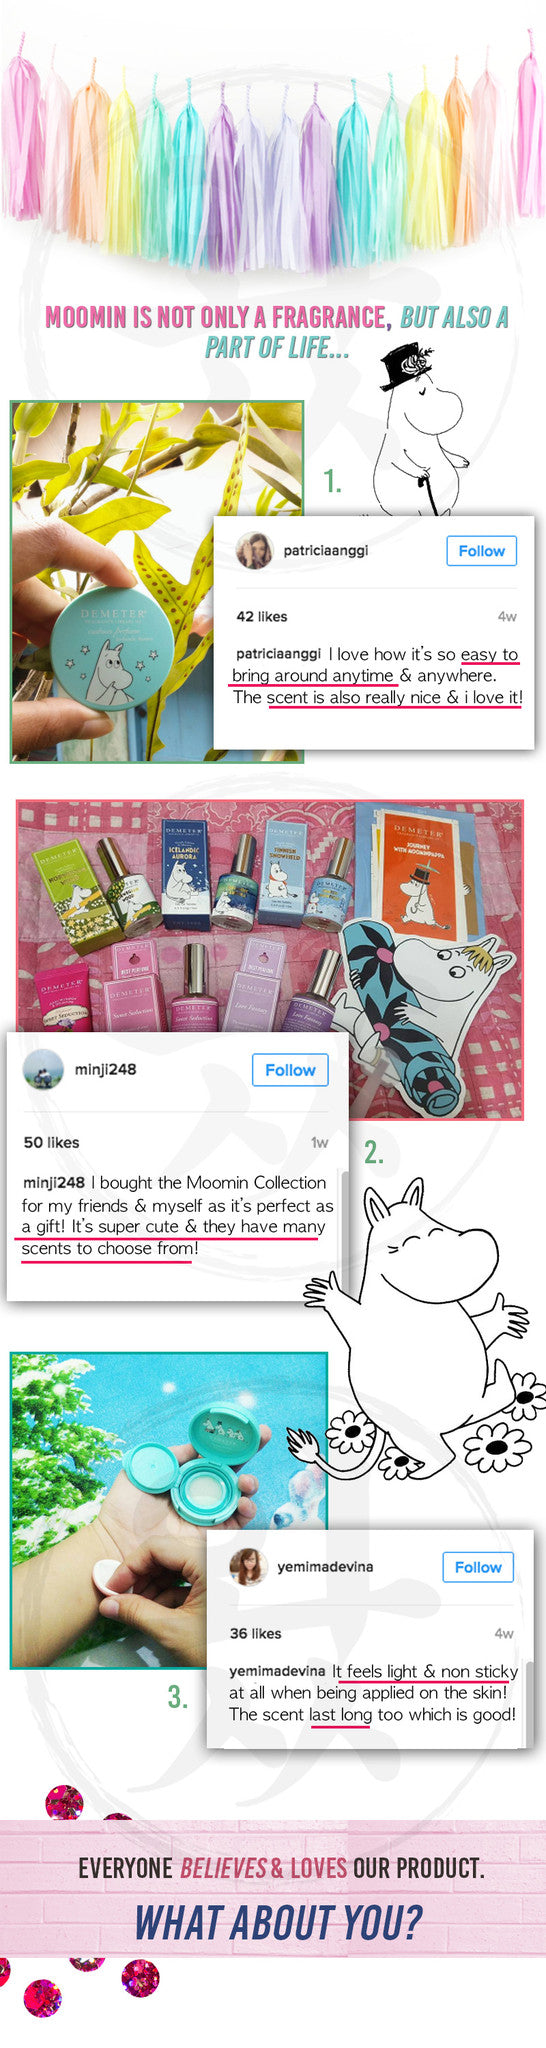 Check out what our customers have to say about our Moomin Products!